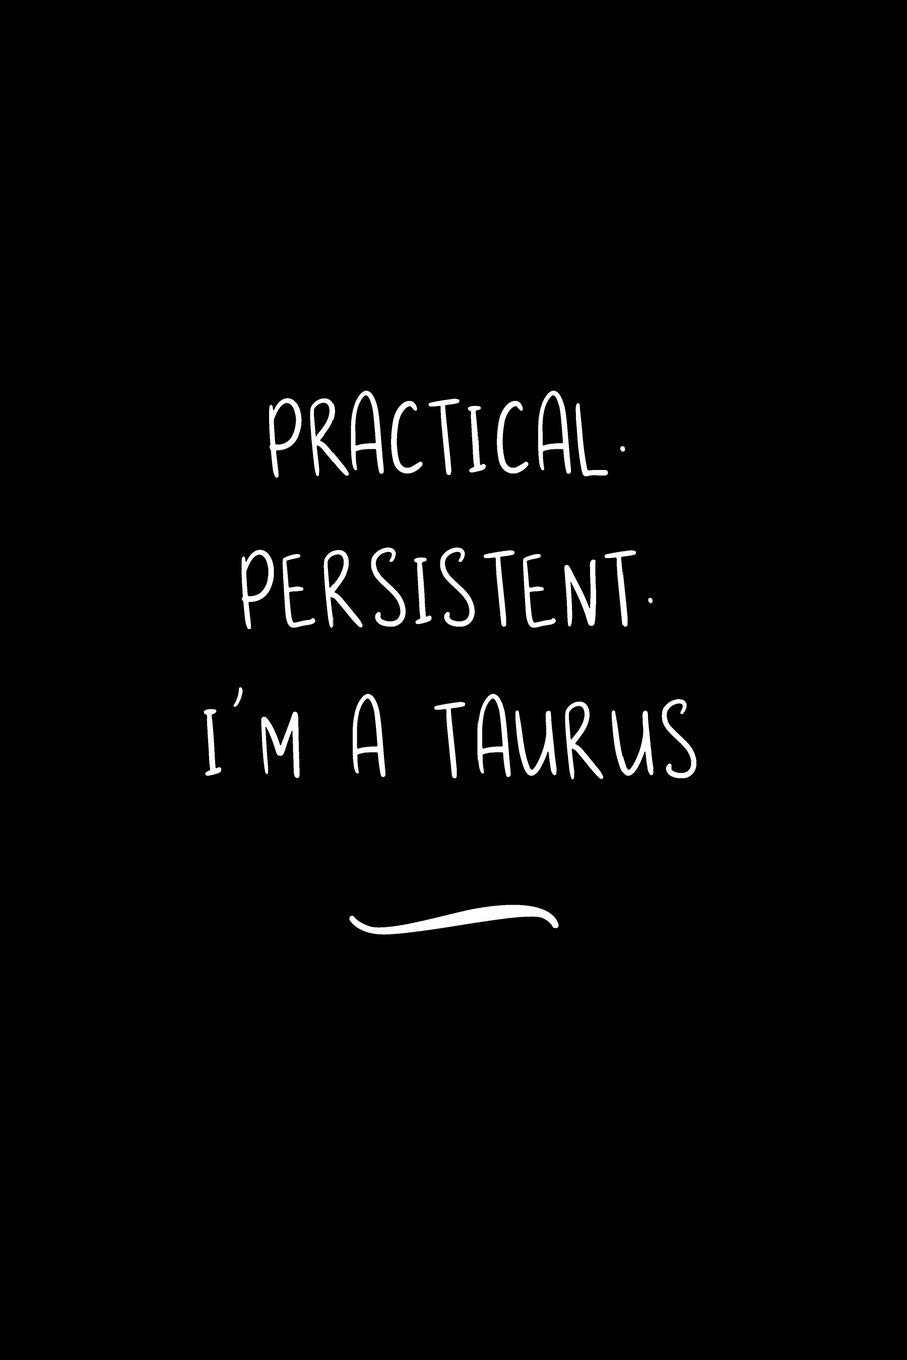 Practical. Persistent. I'm a Taurus: Funny Office Notebook/Journal For Women/Men/Coworkers/Boss/Business Woman/Funny office work desk humor/ Stress Relief Anger Management Journal(6x9 inch)